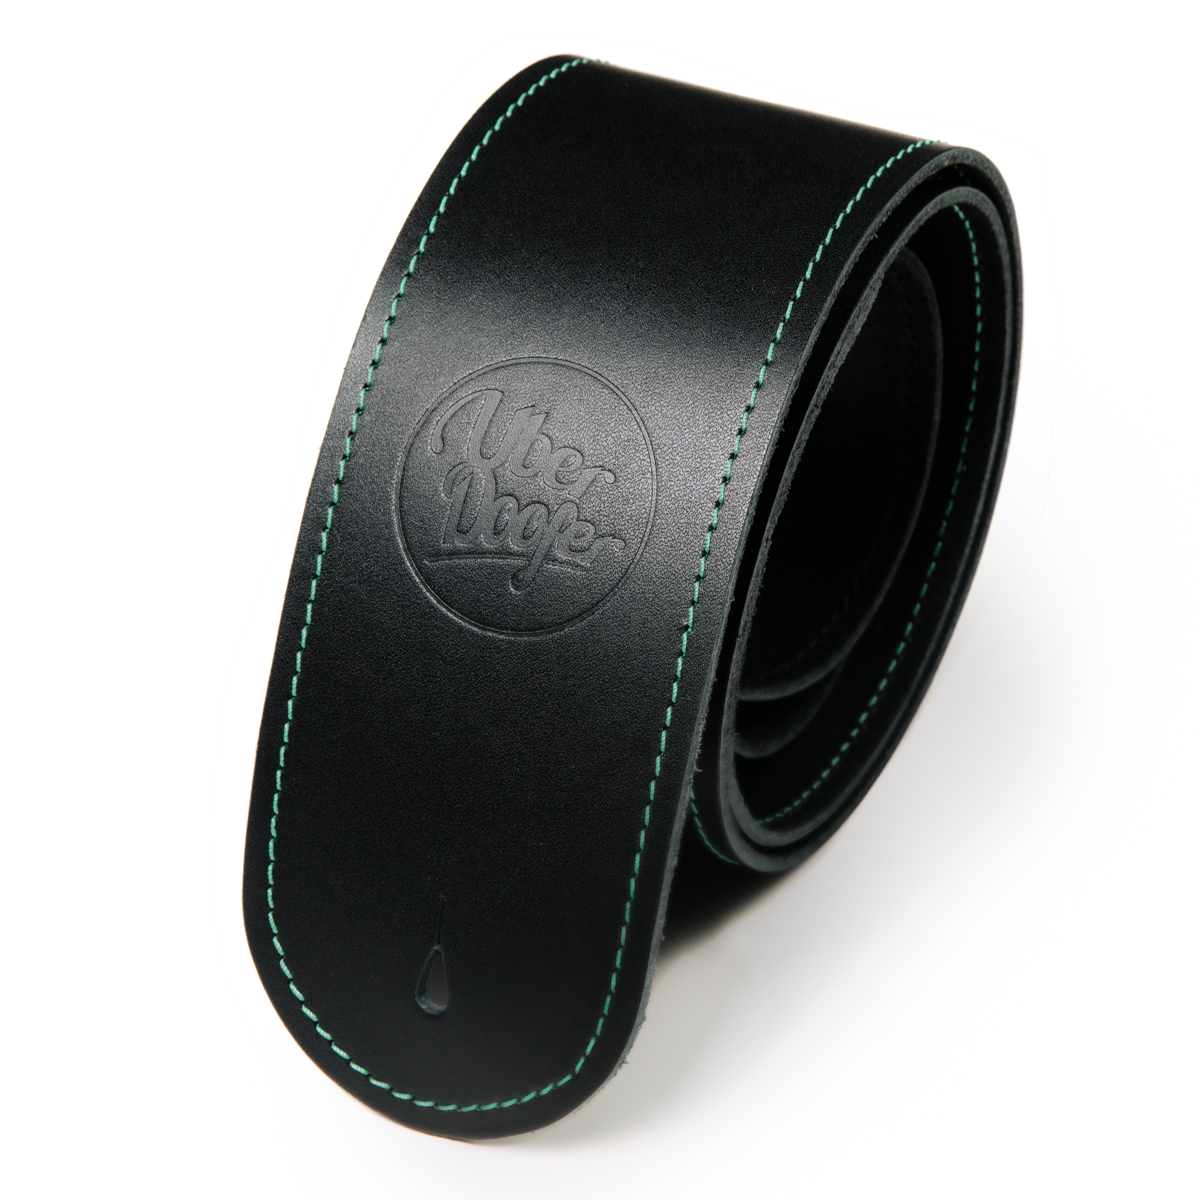 Bainton black with green stitching from Uber Doofer Premium Leather Guitar and Instrument Straps